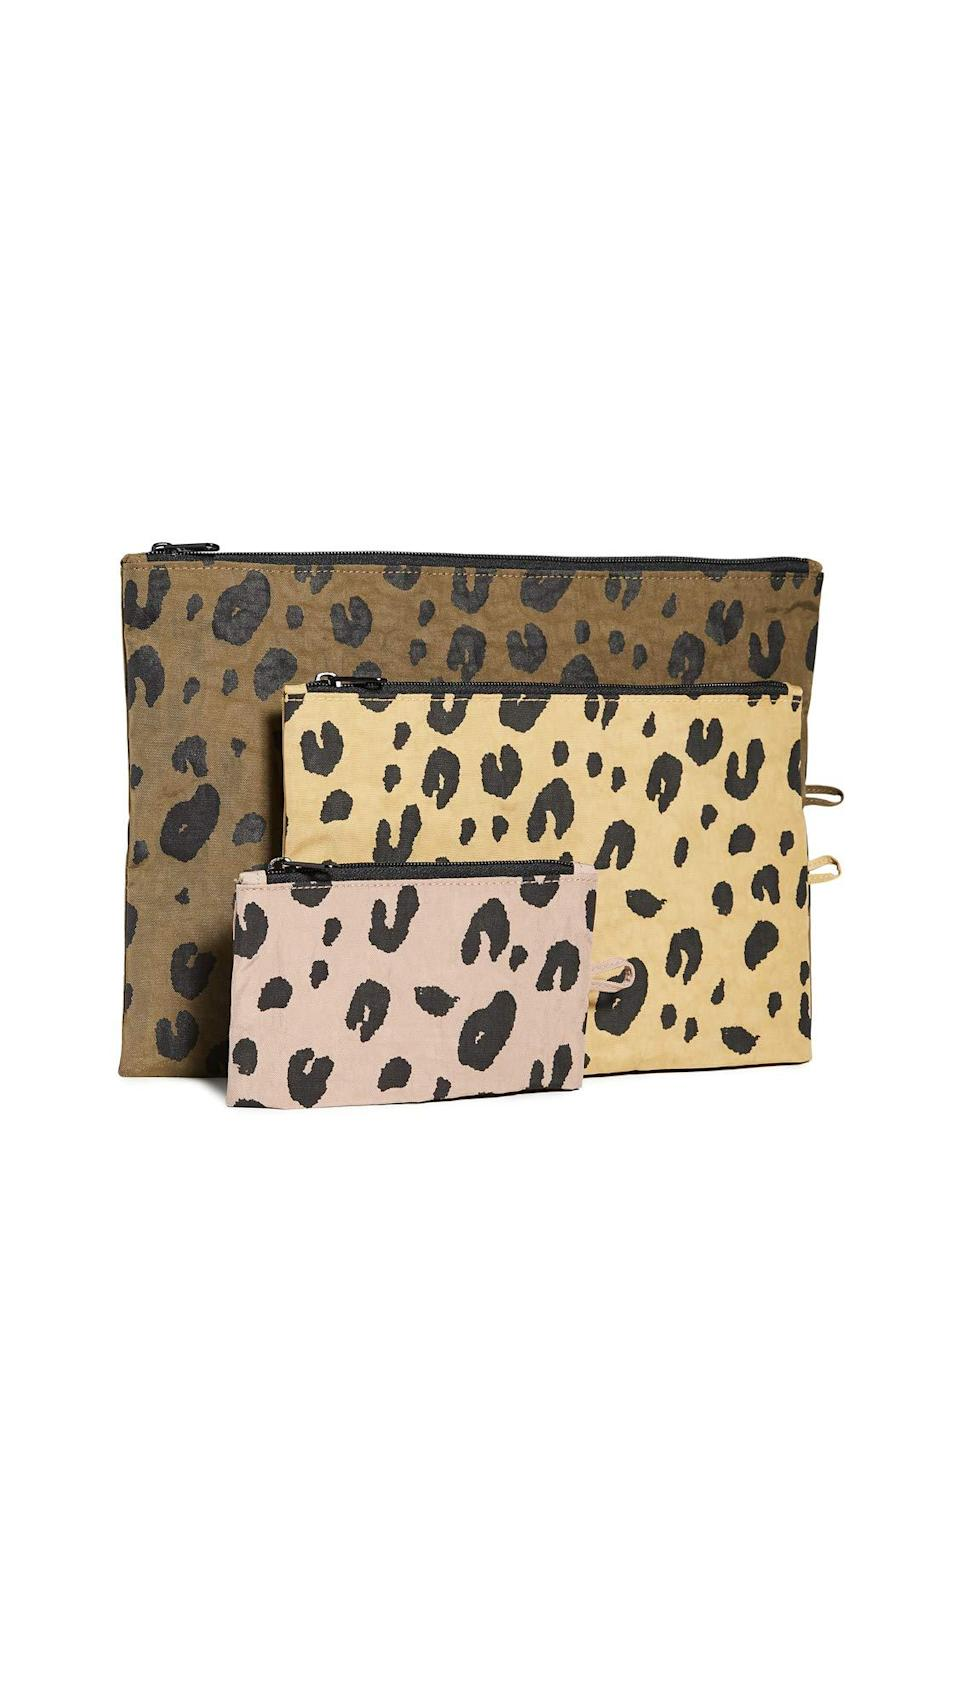 """<strong><h3>Baggu Go Pouch Set</h3></strong><br>R29 readers' go bananas for Baggu — namely this very chic and space-savvy trio of travel pouches that's currently getting the Prime-Day promo treatment with a 15%-off markdown. <br><br><strong>4.6 out of 5 stars and 128 reviews</strong><br><br><strong>Baggu</strong> Go Pouch Set, $, available at <a href=""""https://amzn.to/2FuhzXV"""" rel=""""nofollow noopener"""" target=""""_blank"""" data-ylk=""""slk:Amazon"""" class=""""link rapid-noclick-resp"""">Amazon</a>"""